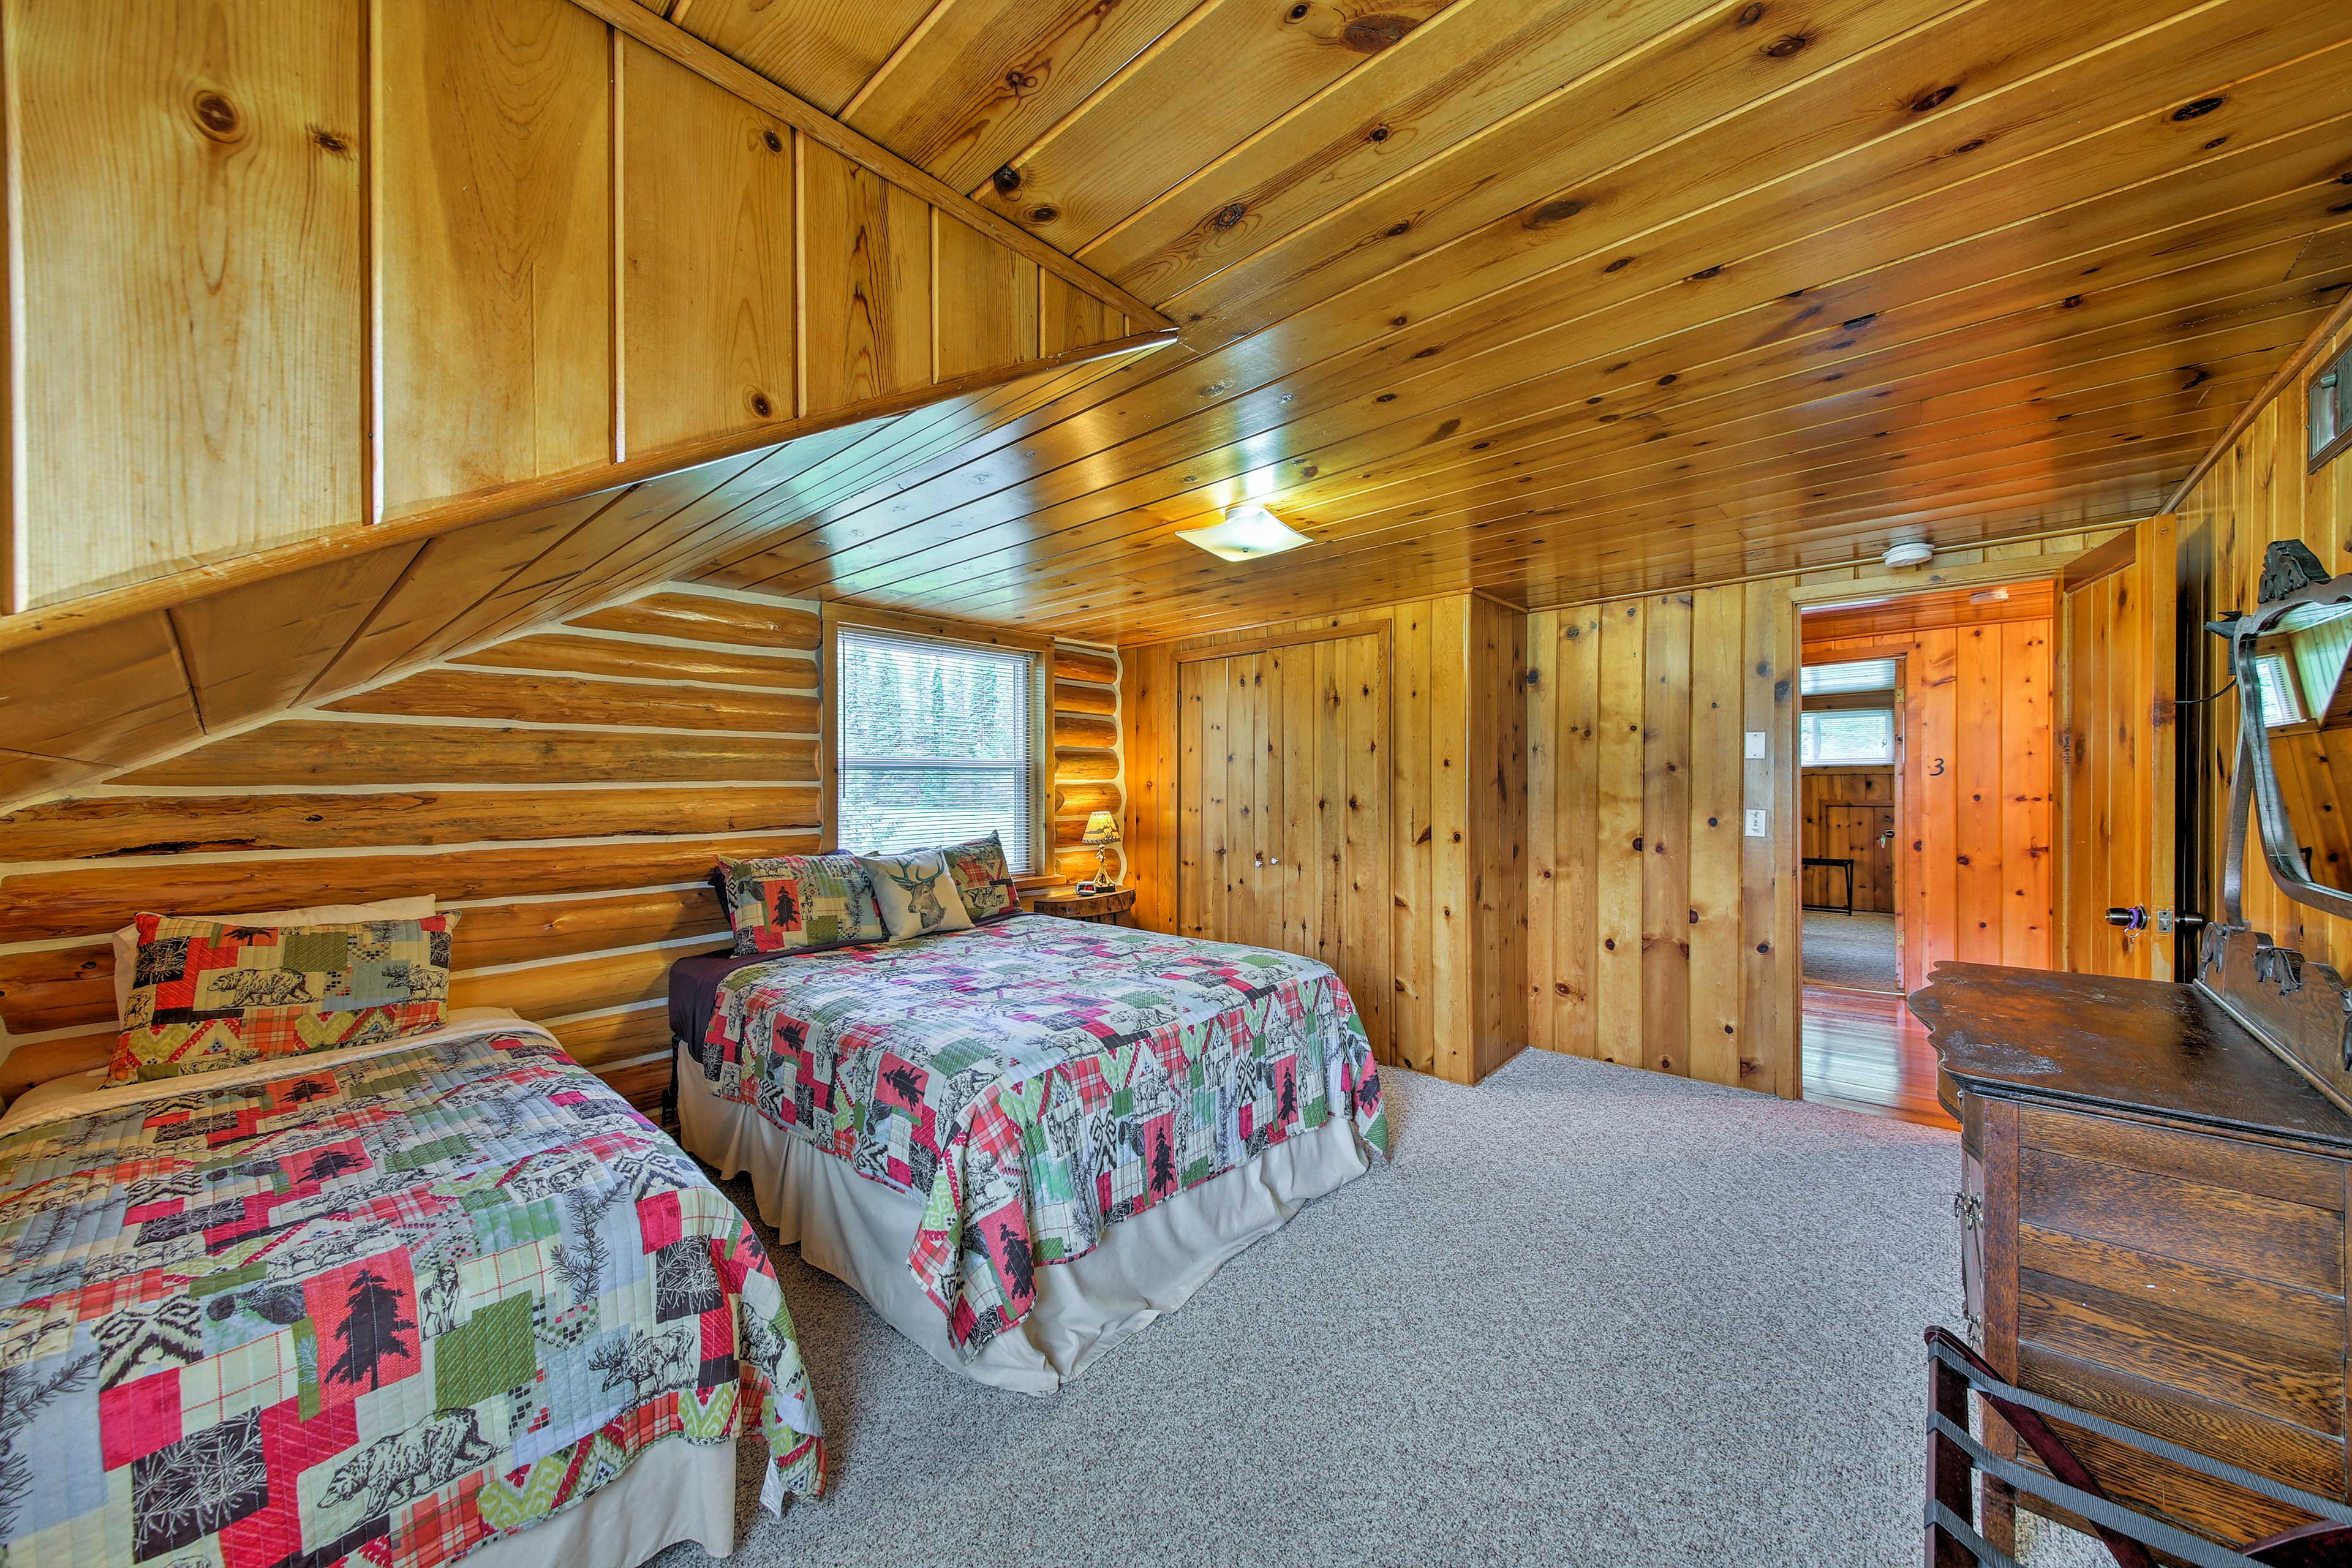 Up to 4 guests could share this bedroom.